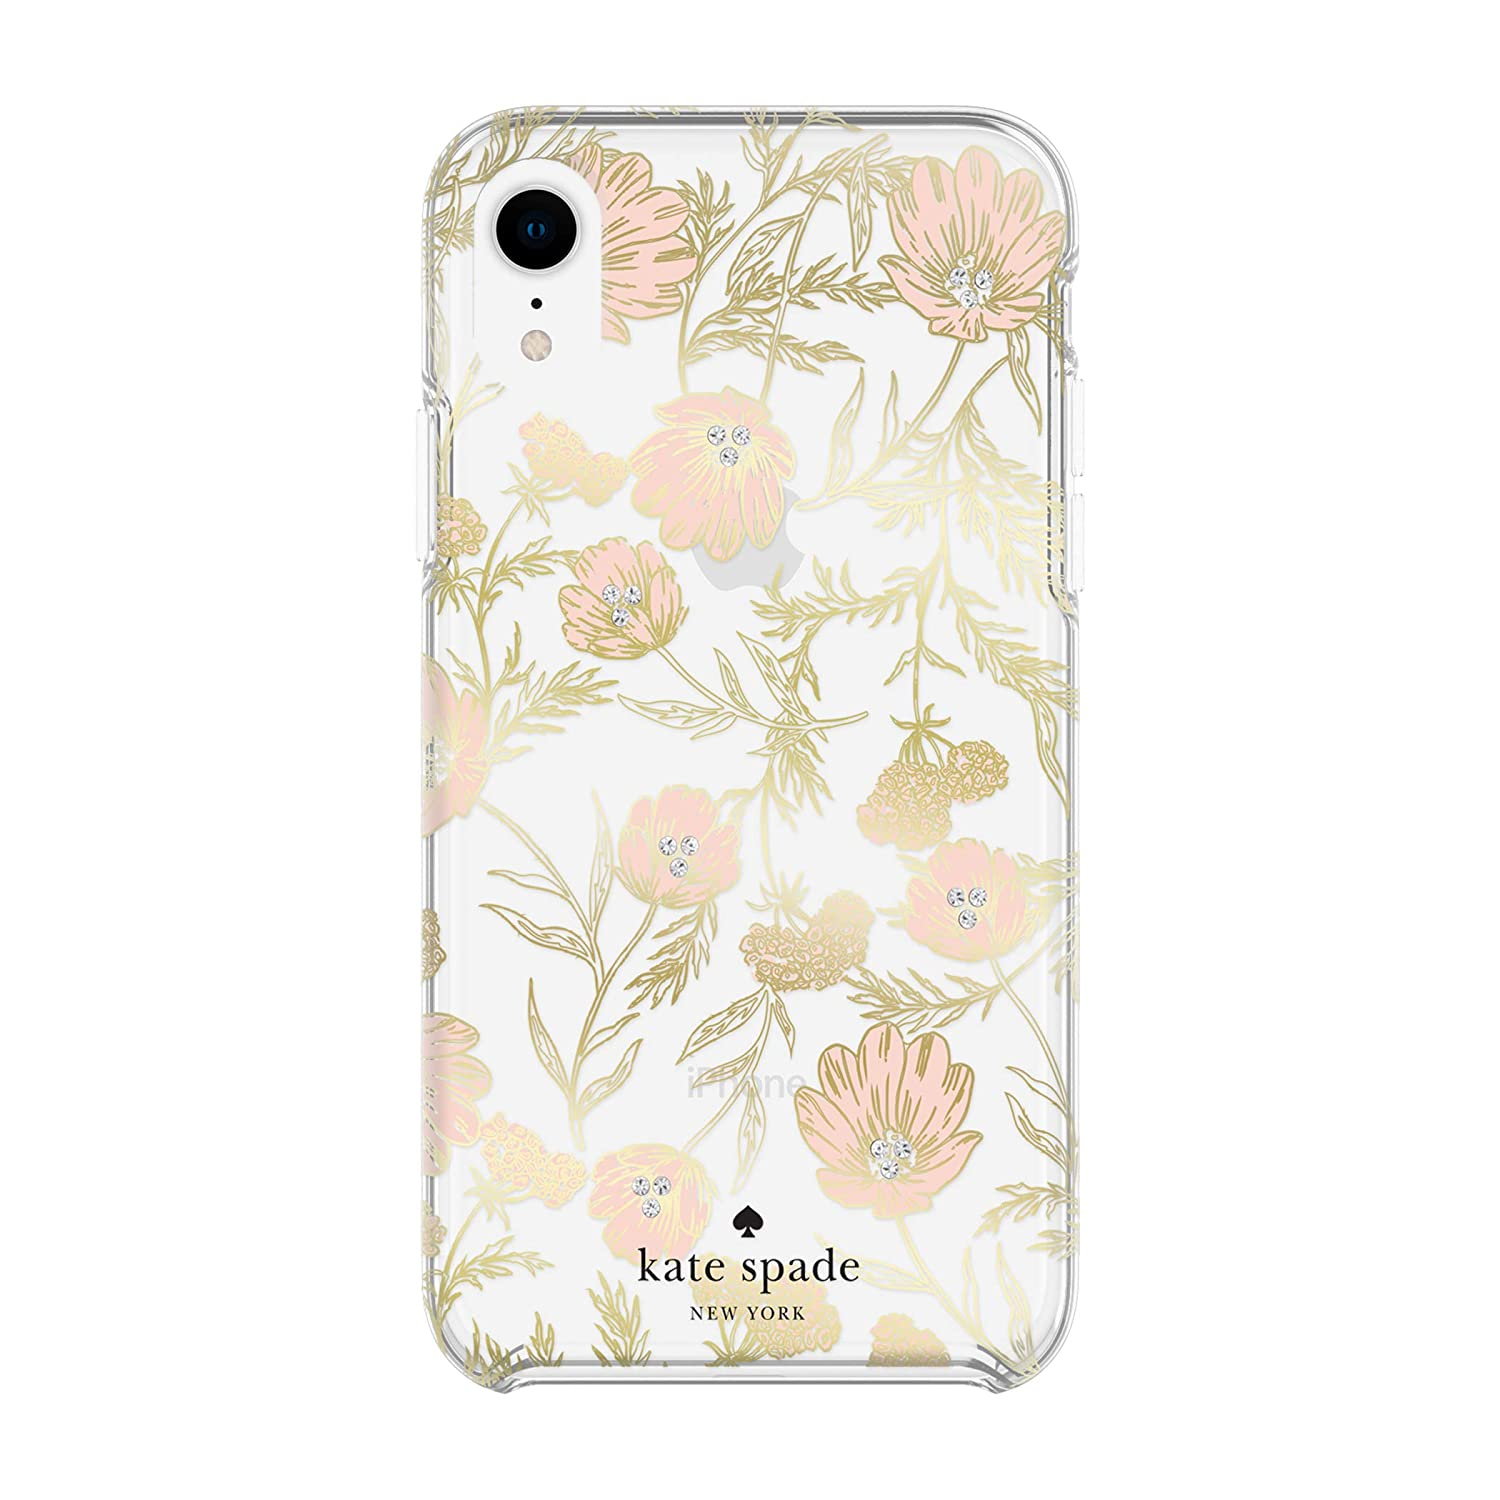 differently f1b34 f8f3c Kate Spade New York Phone Case for Apple iPhone XR Protective Phone Cases  with Slim Design Drop Protection and Floral Print, Blossom Pink/Gold with  ...